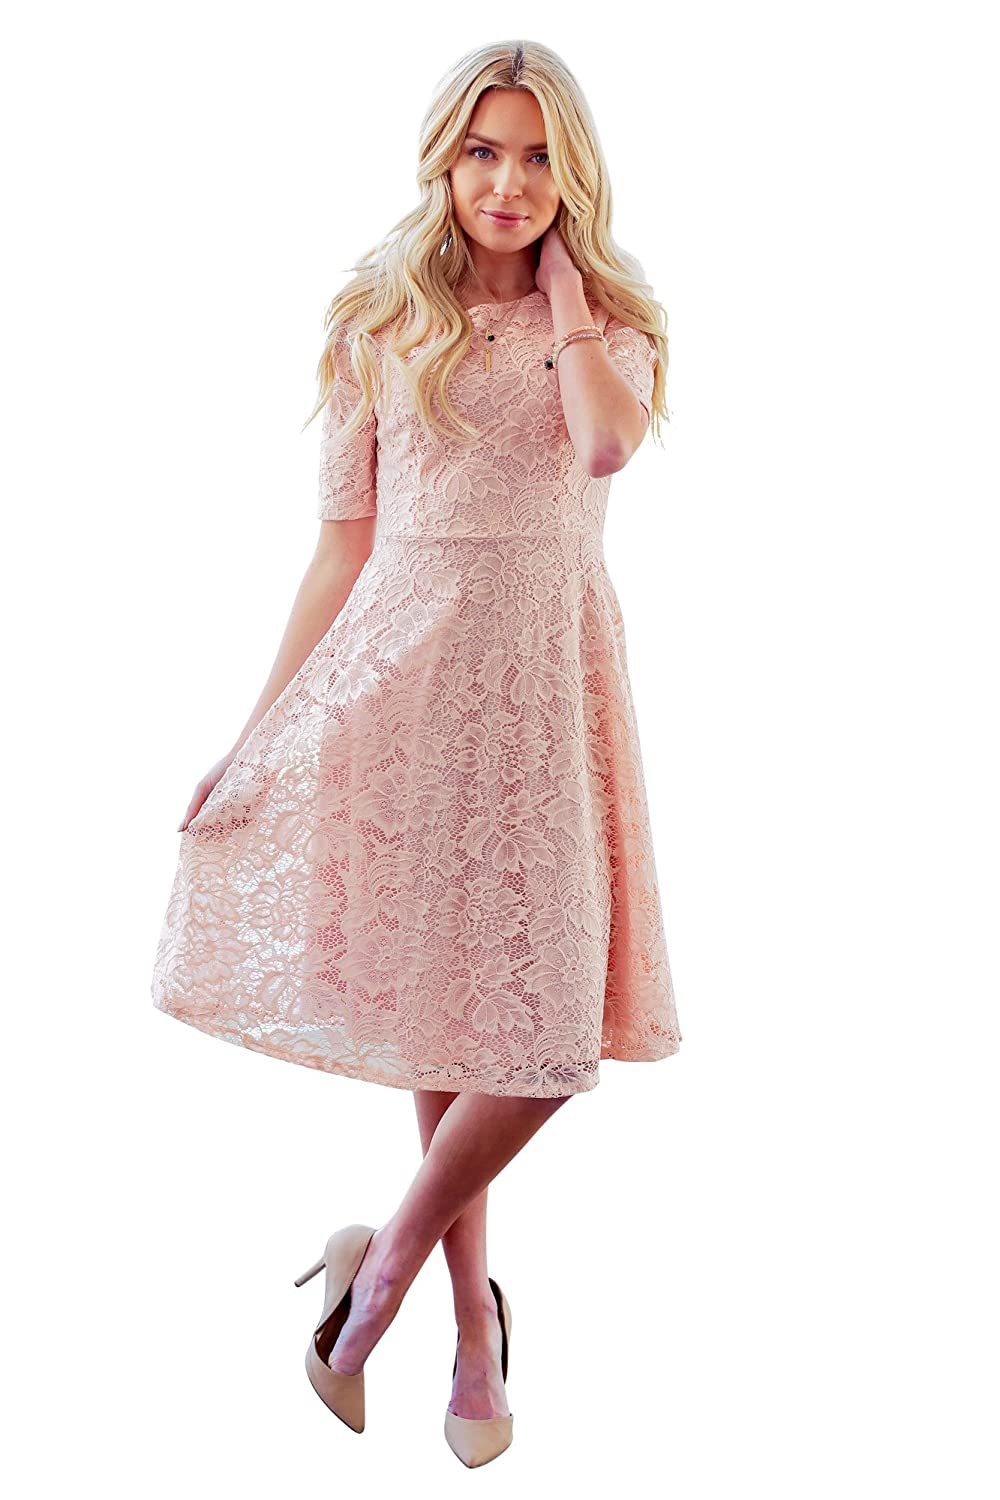 1cc3bc284de0 Gorgeous full-lace Modest Dress is stunning   unique! Perfect for wearing  to church